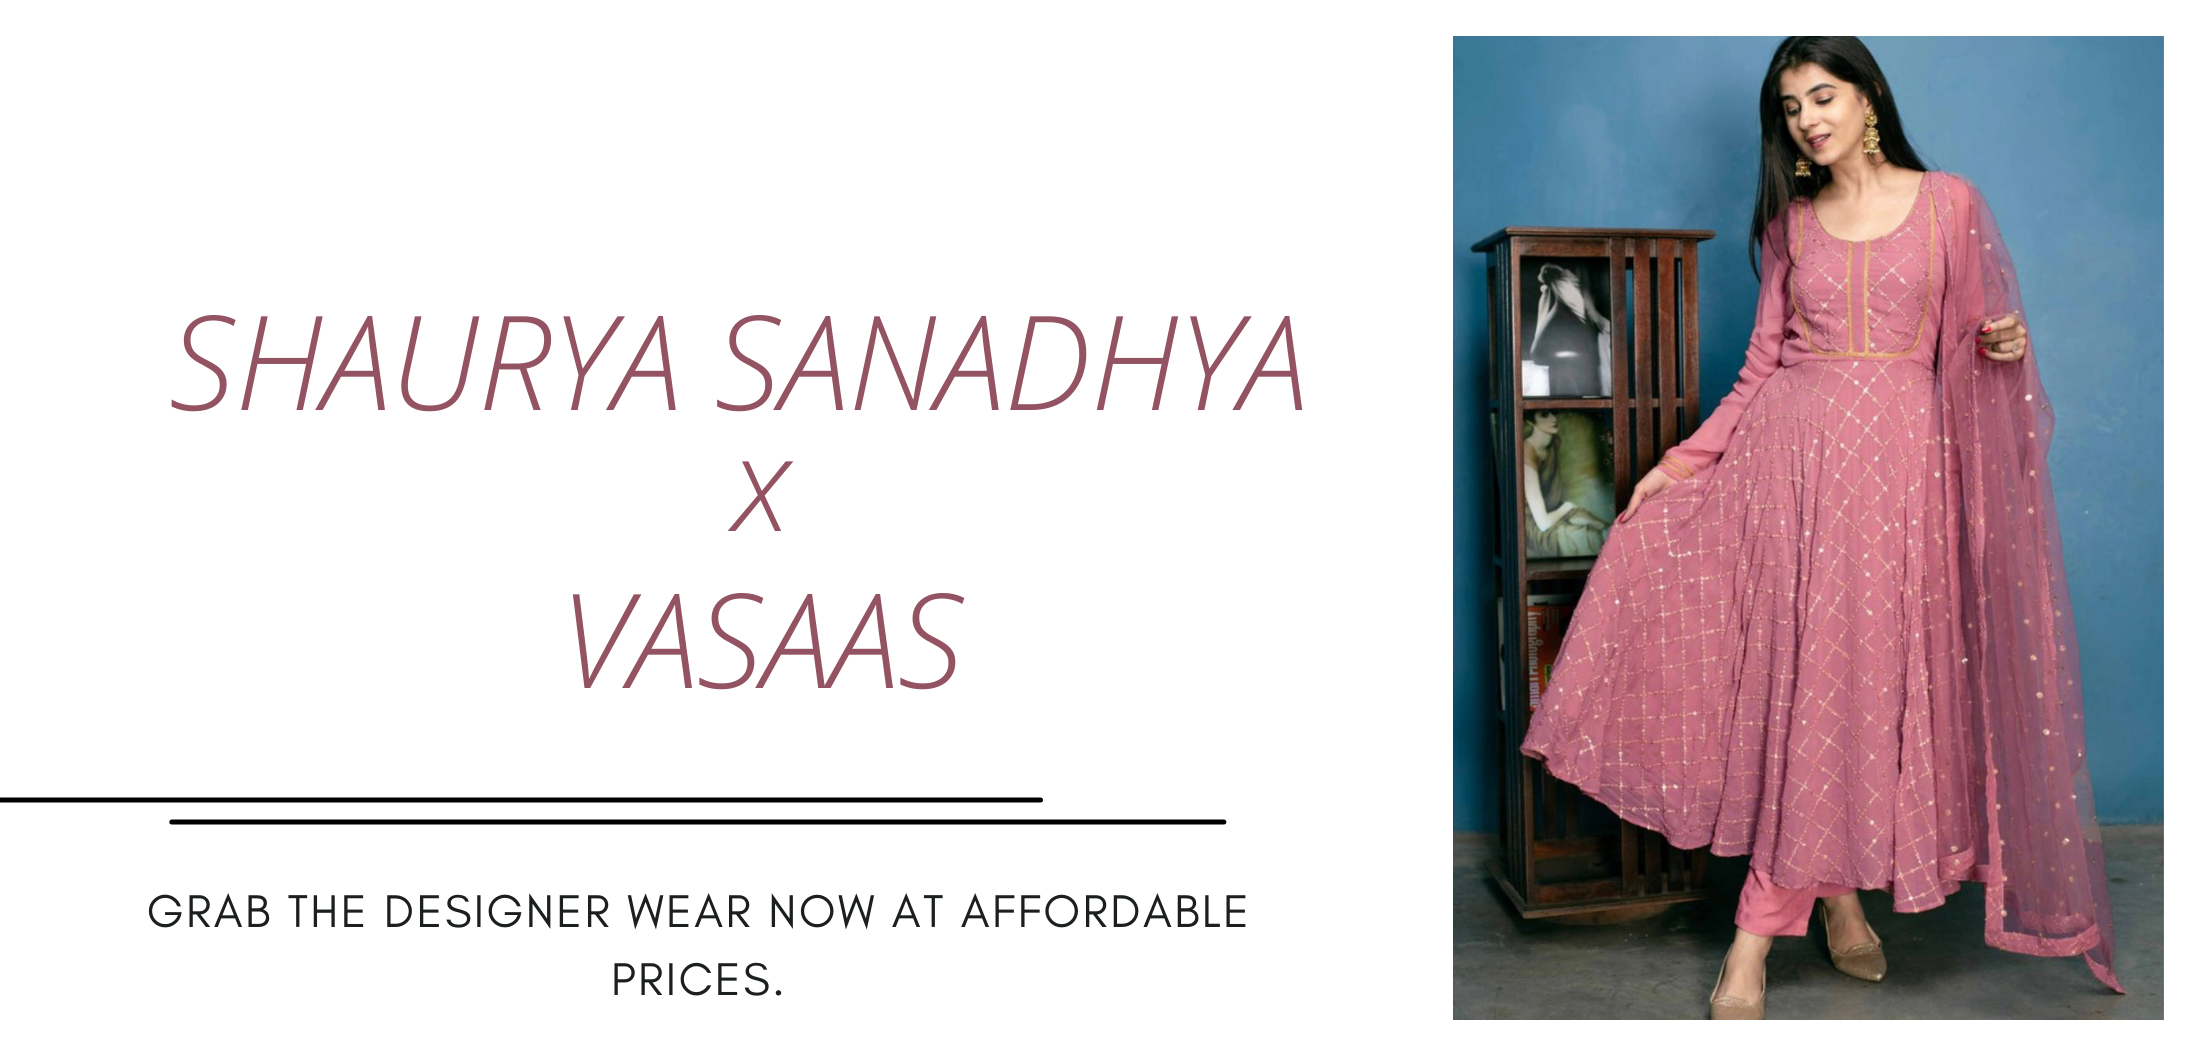 Vasaas~Online fashion store